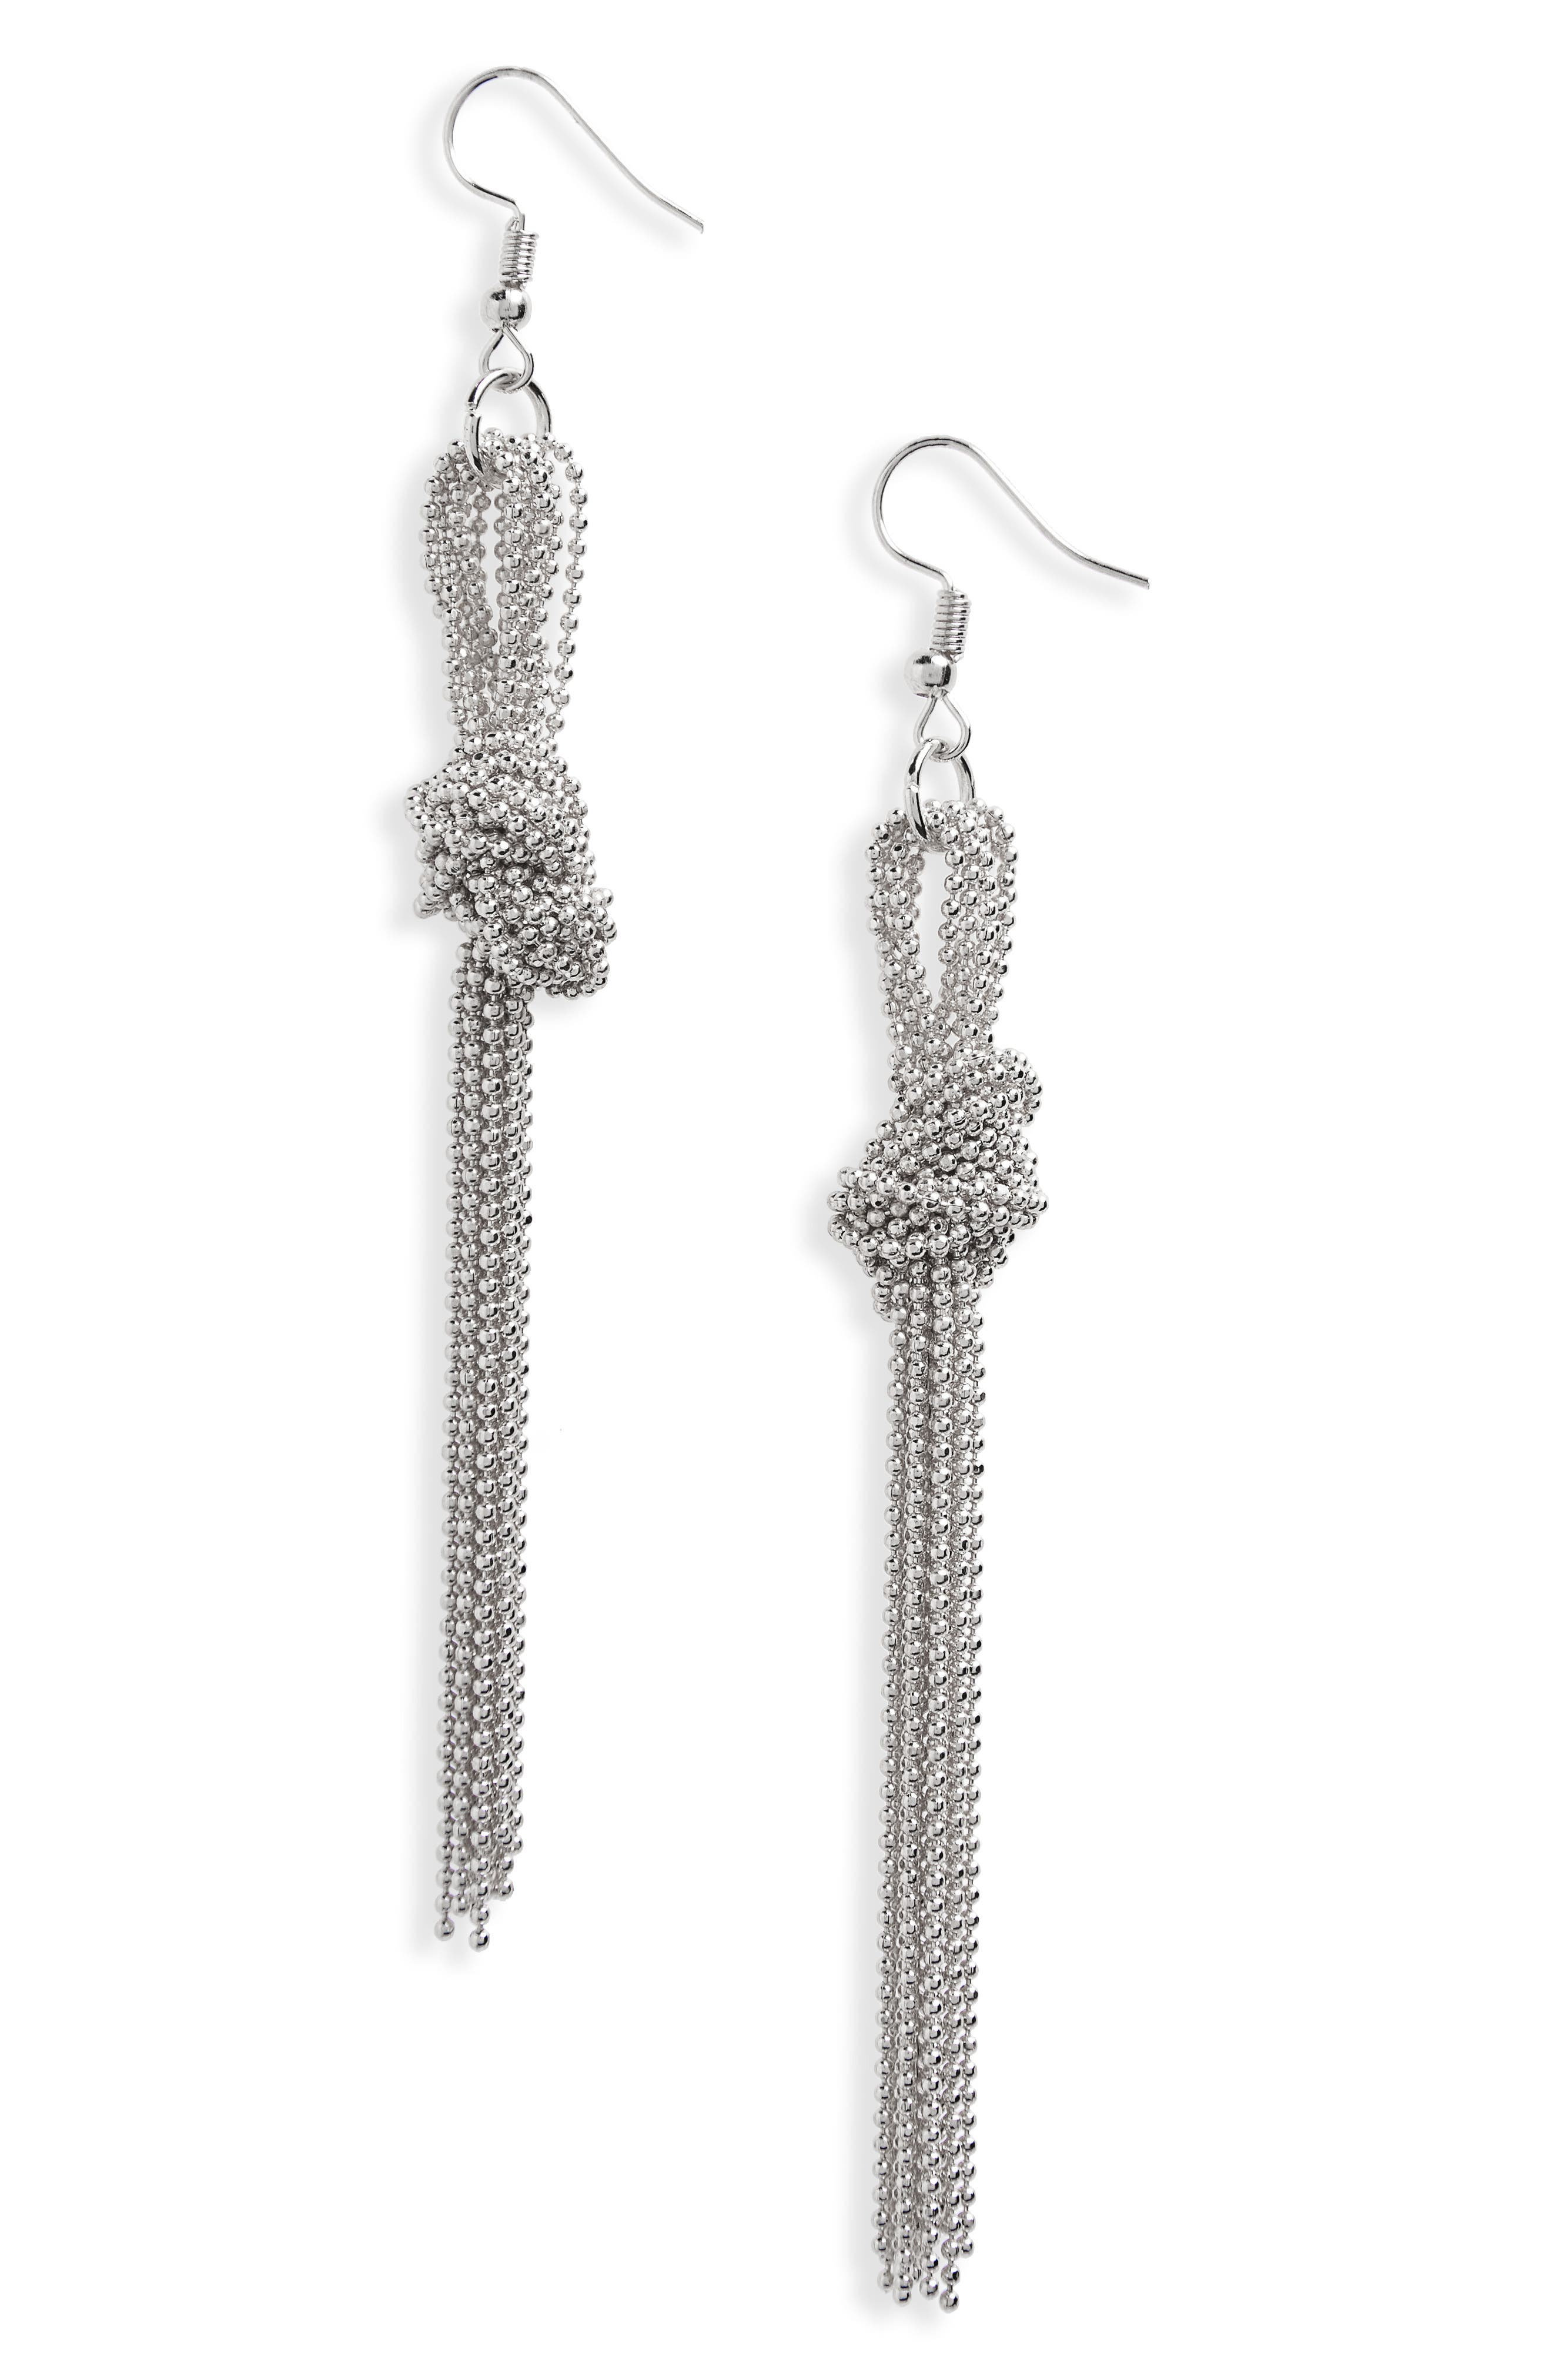 Knotted Bead Chain Linear Earrings,                         Main,                         color, 040